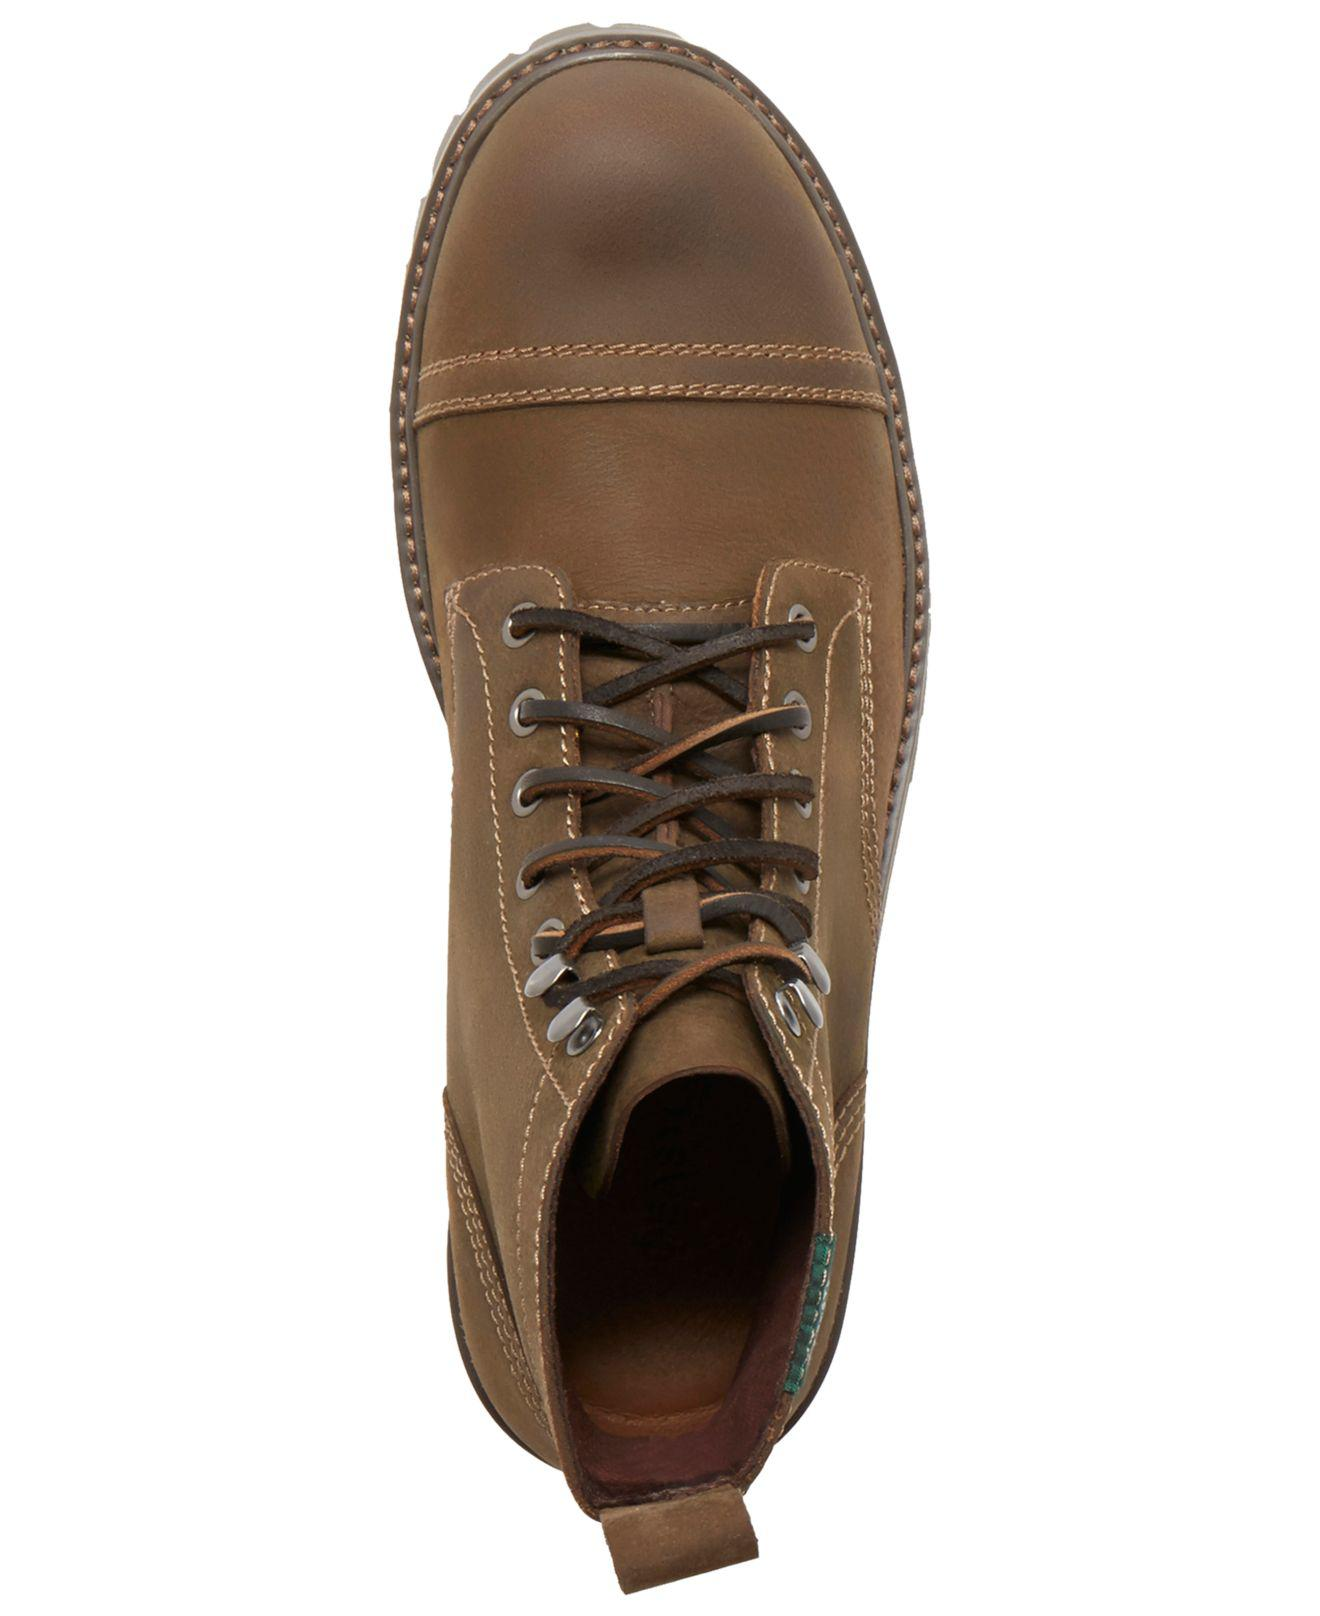 df7594f1ee9 Lyst - Eastland Ethan 1955 Boots in Green for Men